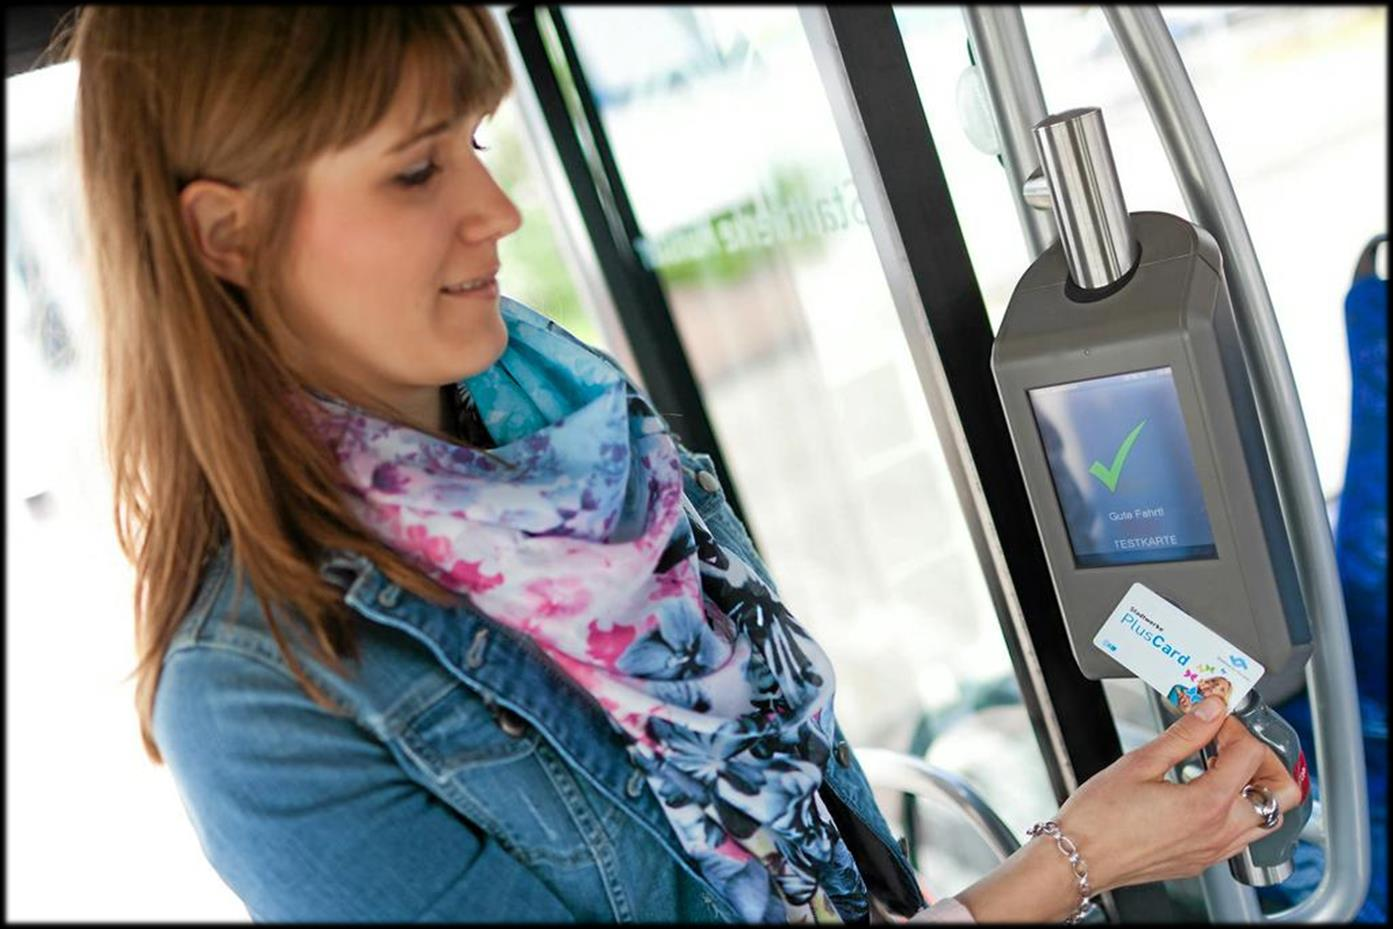 eticketing-systeme: ÖPNV [Courtesy of Münstersche Zeitung] TU